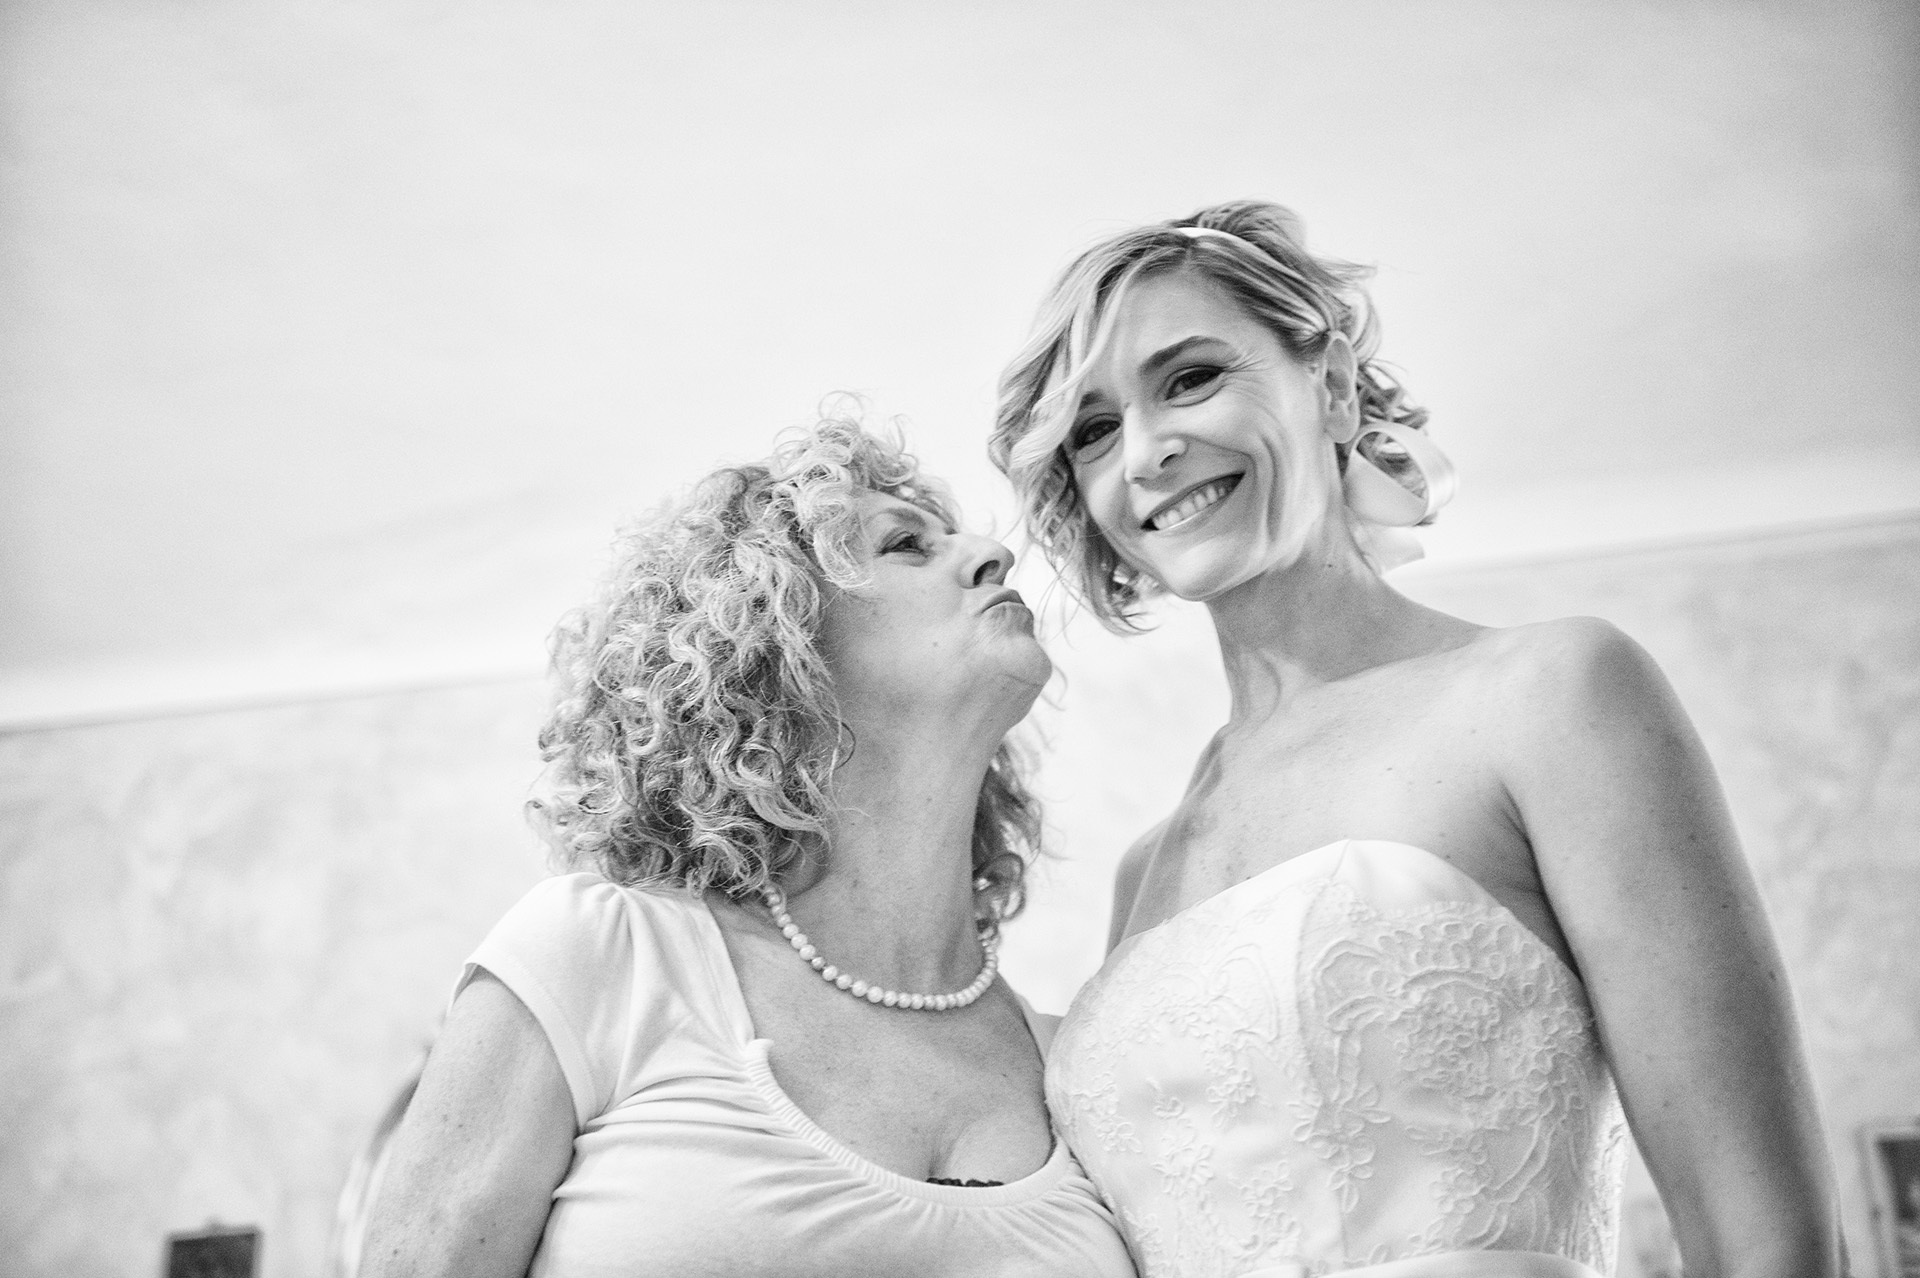 Wedding planner for exclusive wedding in Italy - Wedding photographer in Iceland and New York